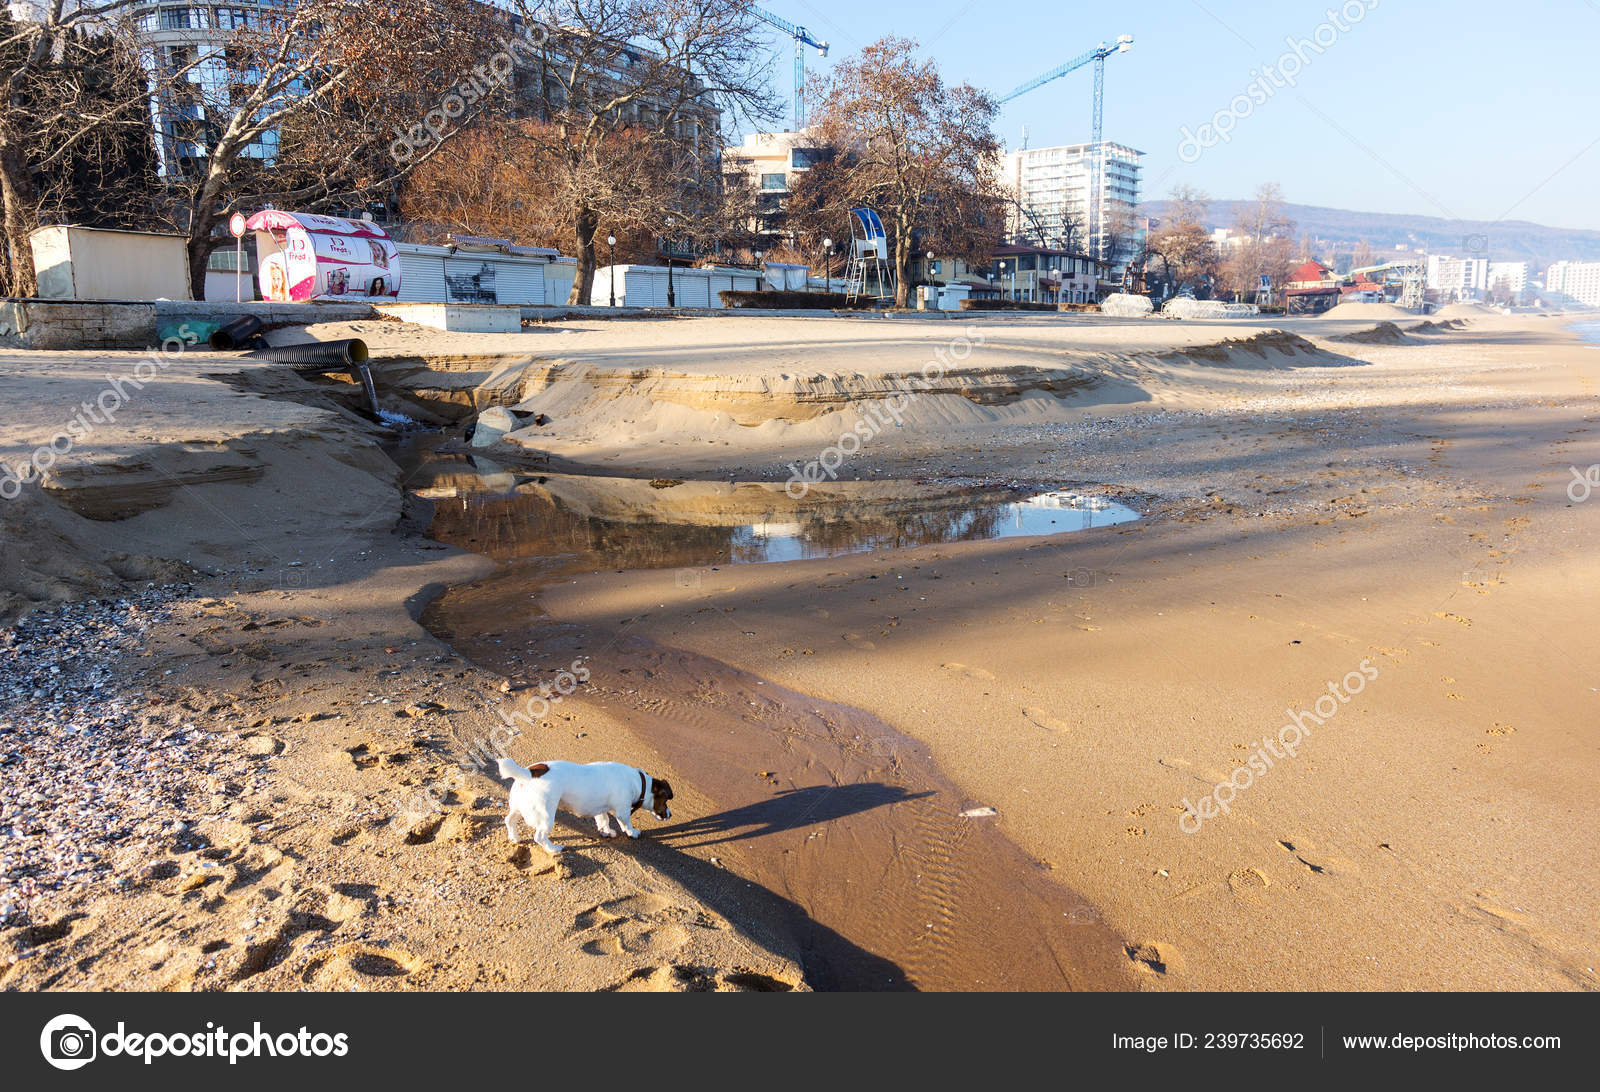 Varna Bulgaria Jan 2019 Industrial Waste Water Pipeline Discharges